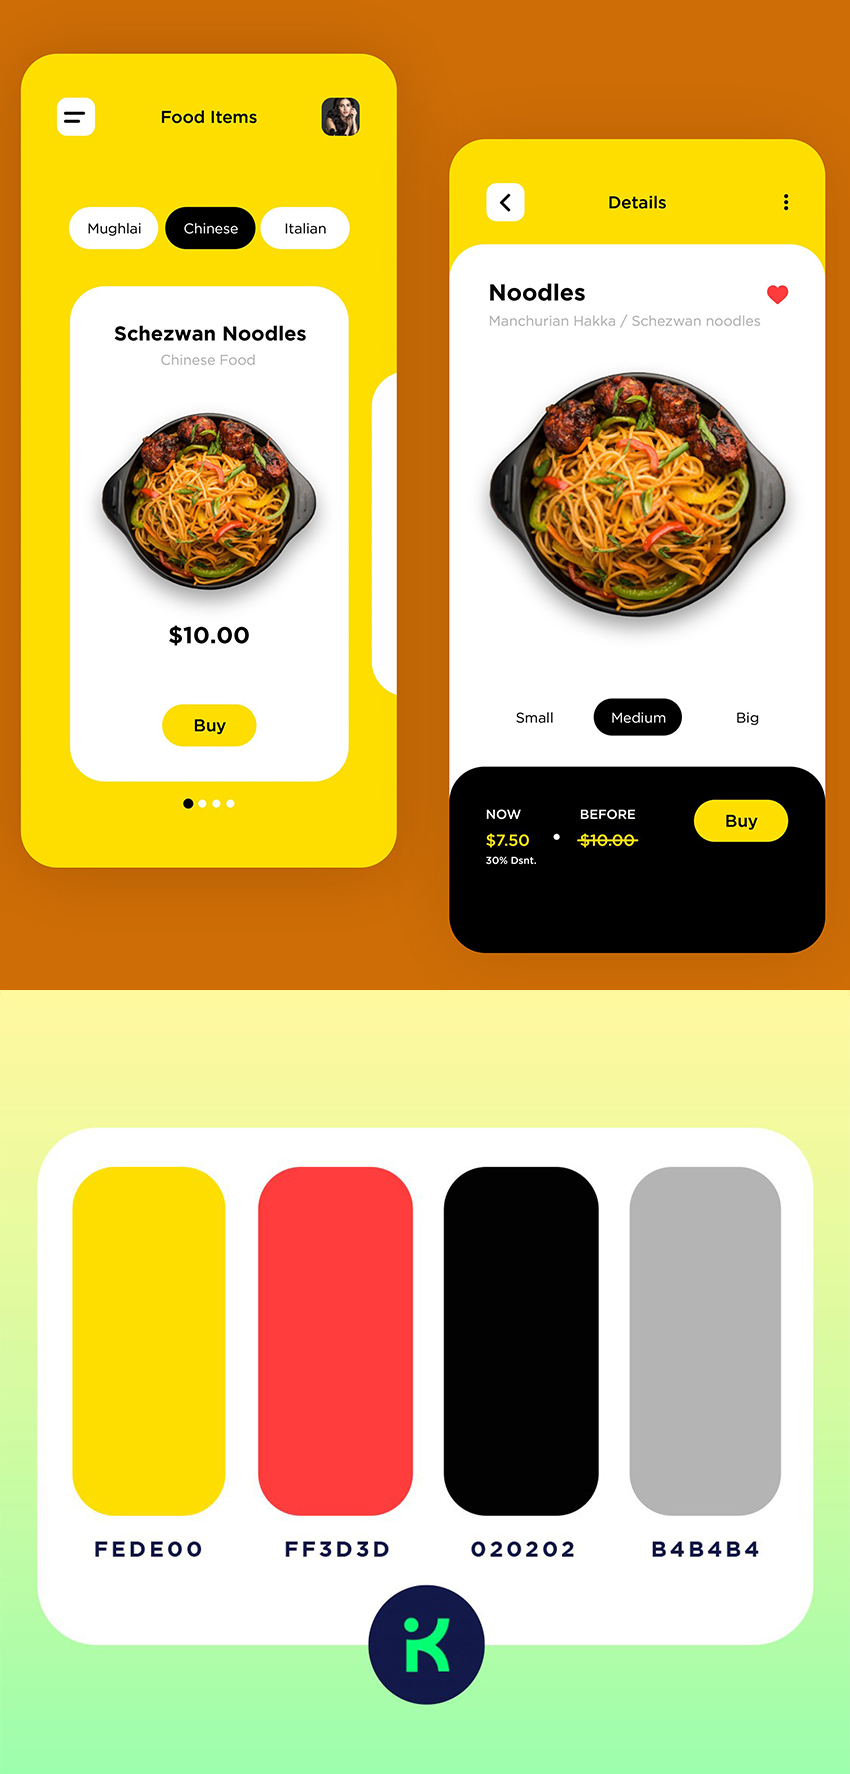 Food mobile app ui kit created with Adobe XD that aims to make identifying and ordering healthy foods effortless